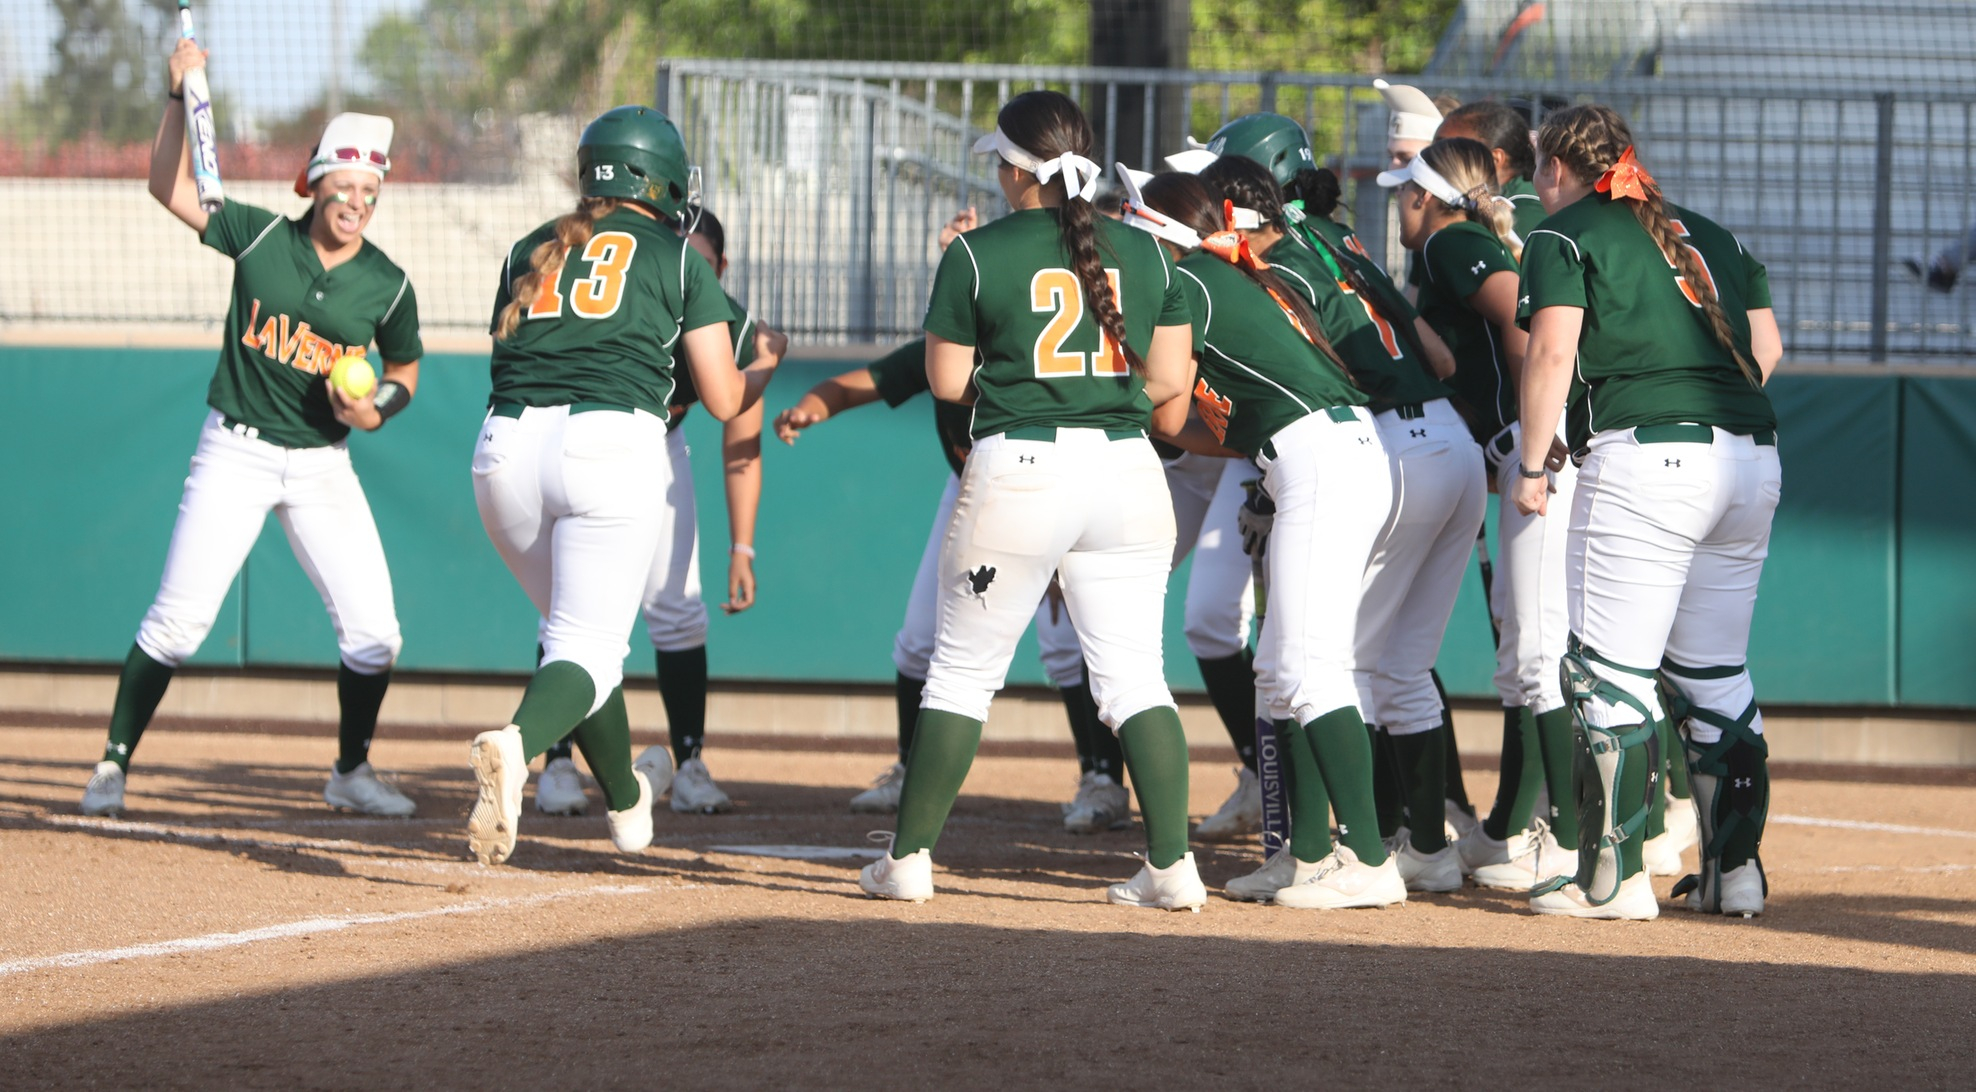 Leopards win on Senior Day, claim share of SCIAC title